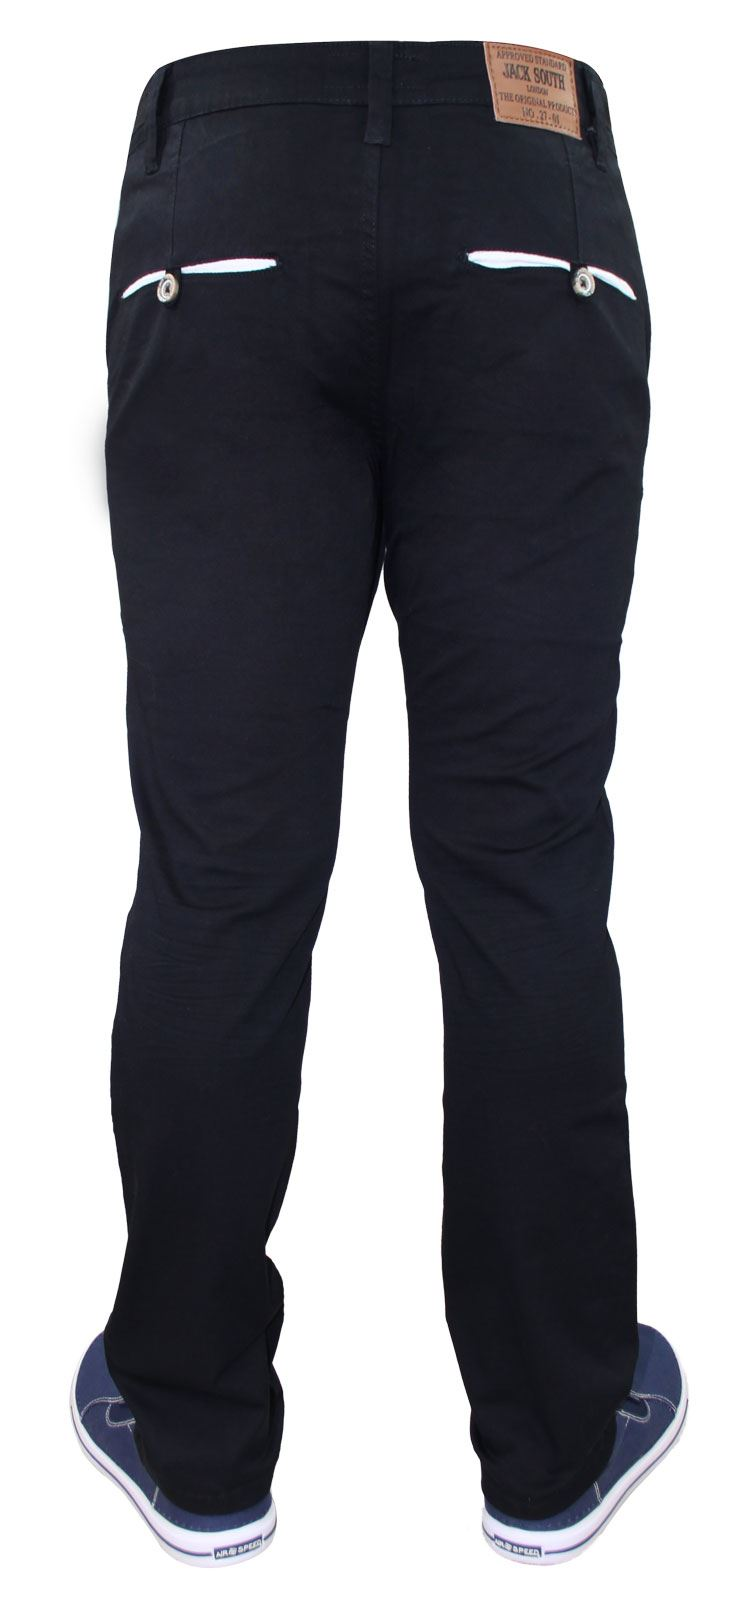 Men-Chinos-Trousers-Regular-Fit-Stretch-Cotton-Jeans-Pants-All-Waist-Sizes thumbnail 14